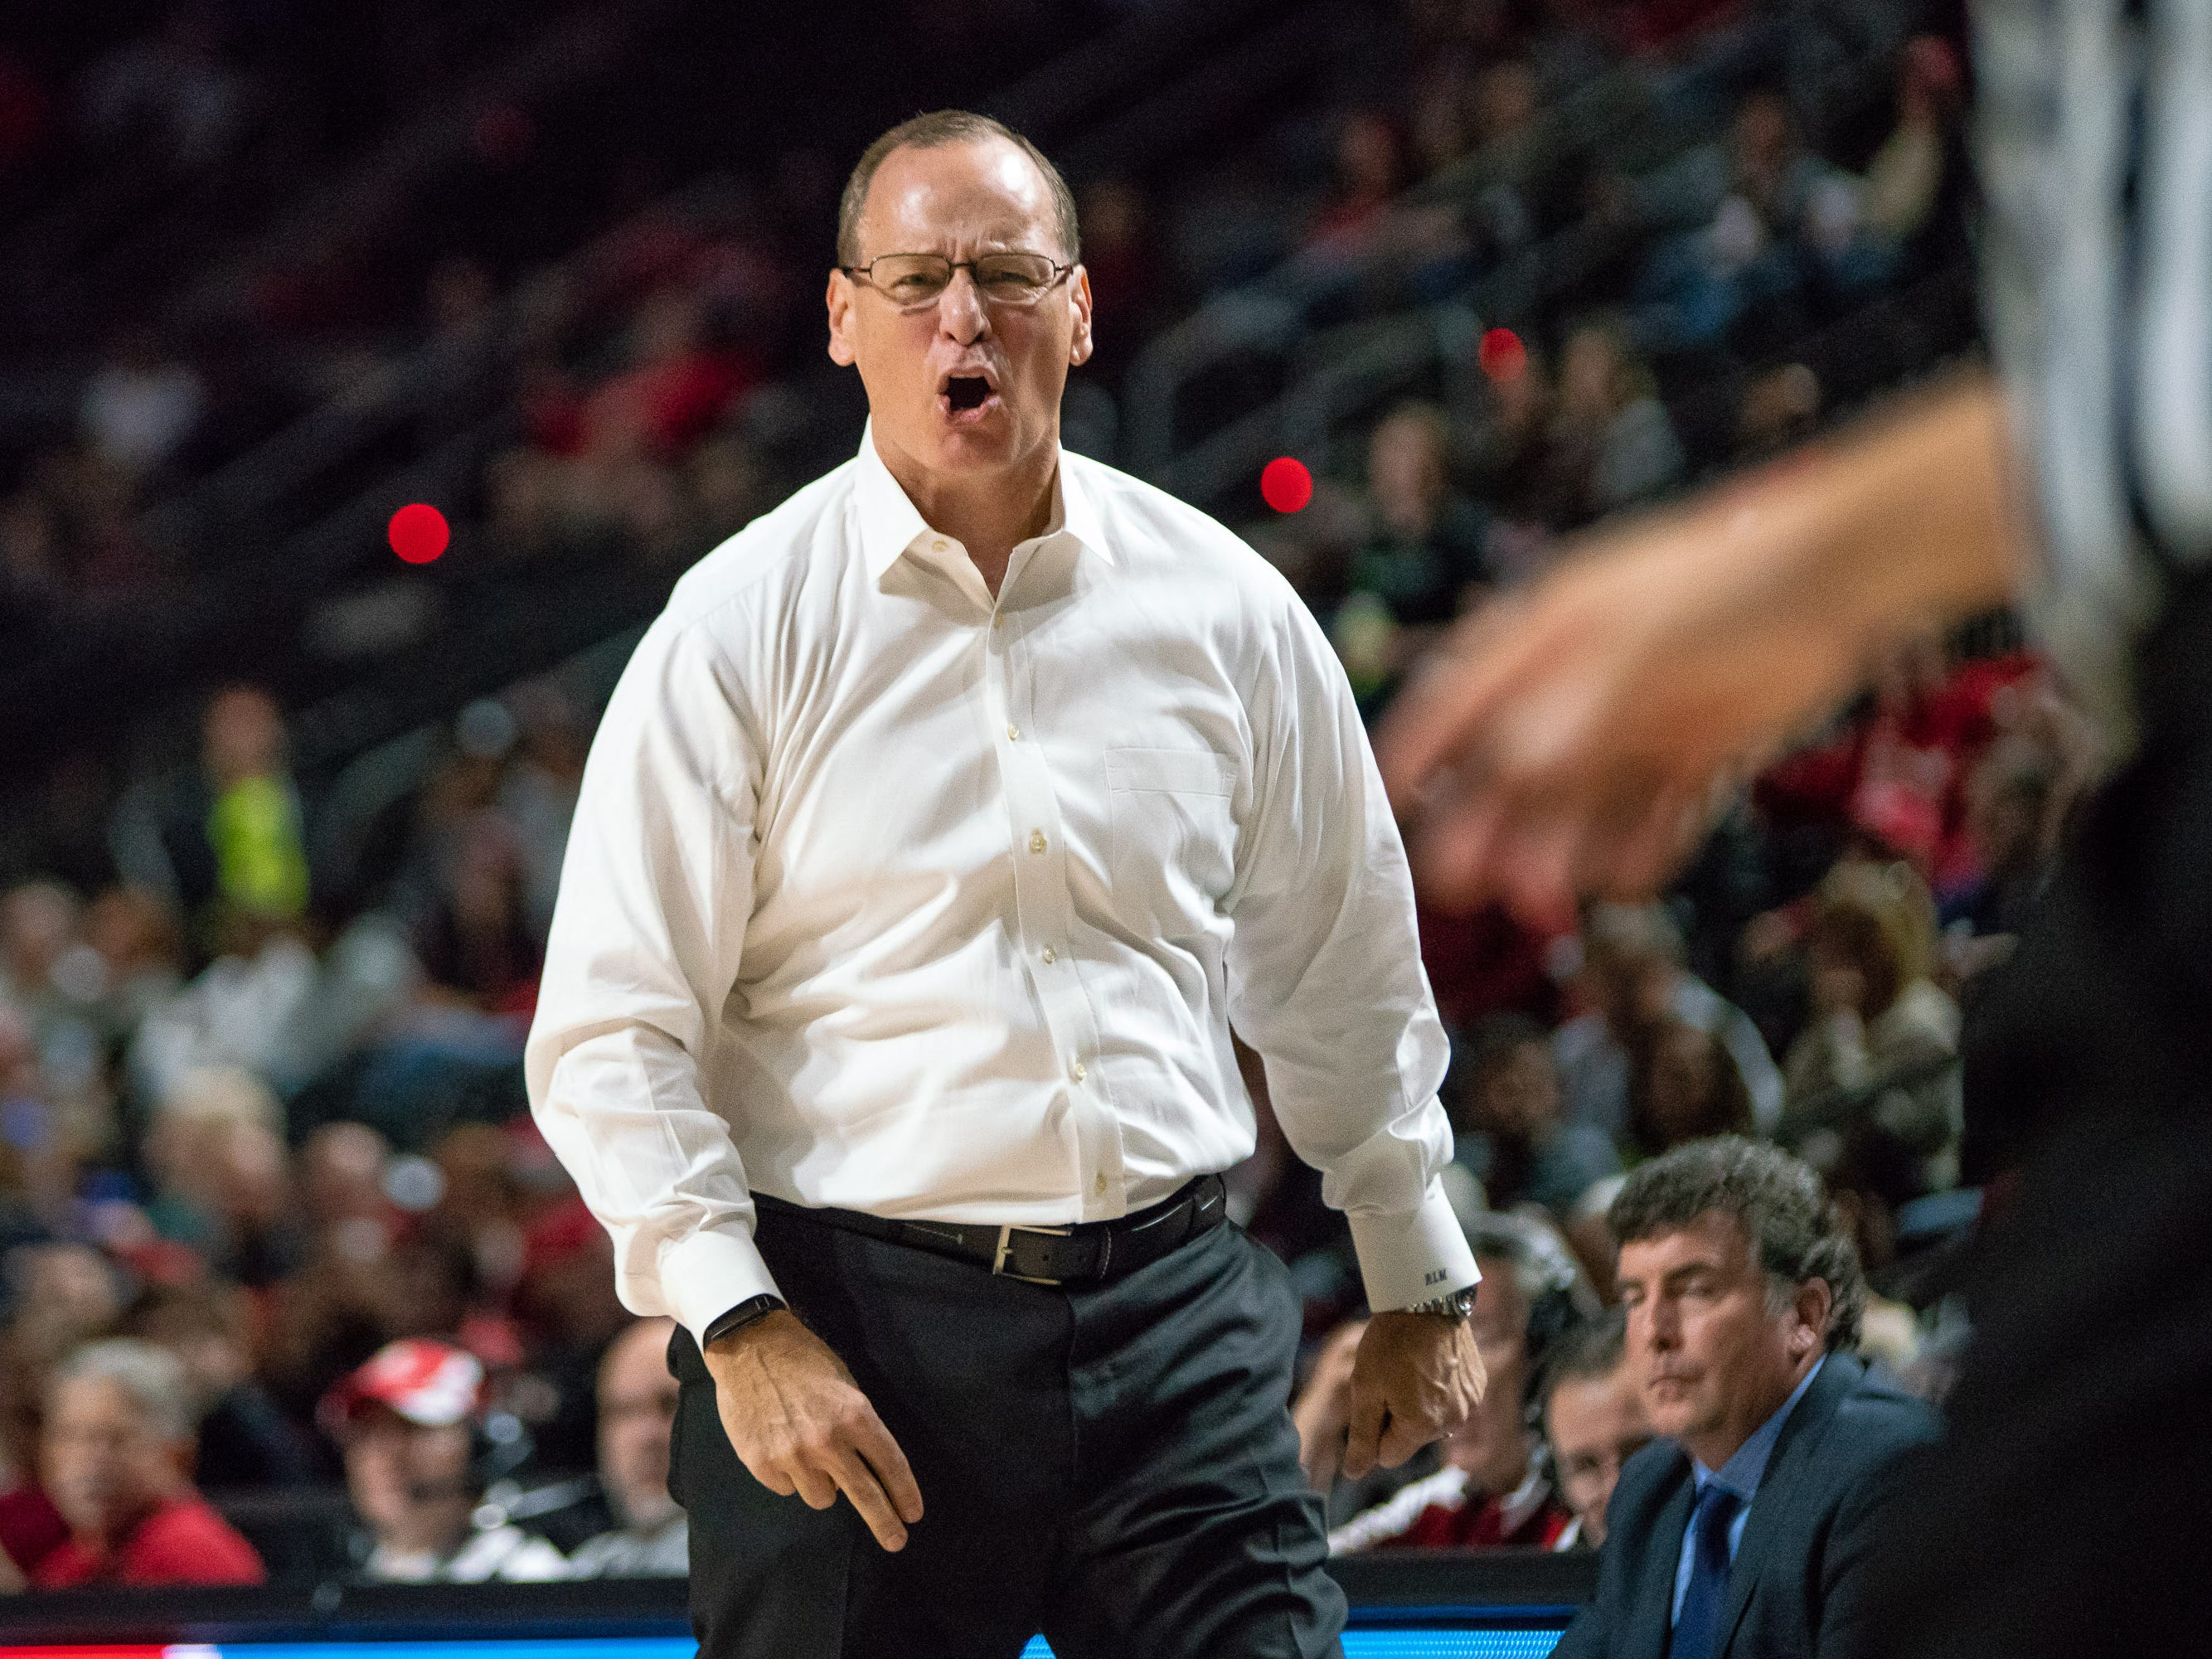 UL's head basketball coach Bob Marlin reacting negatively to a call as the Ragin' Cajuns take on the LA Tech Bulldogs at the Cajundome on December 15, 2018.